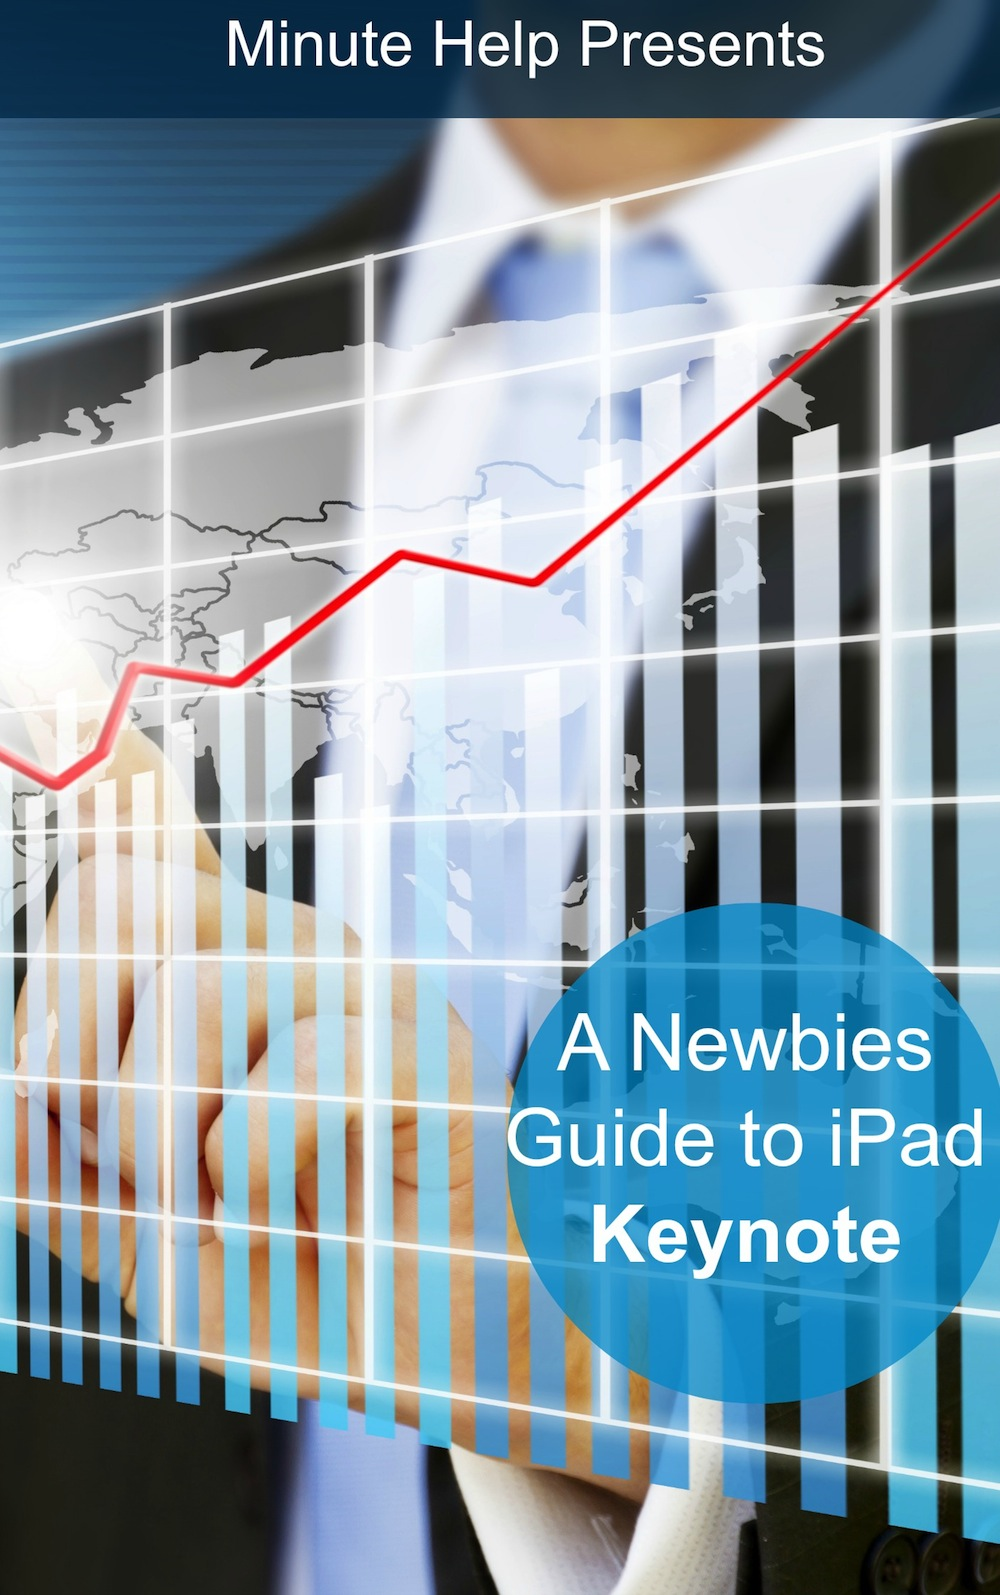 A Newbies Guide to iPad Keynote (iOS 6 Update) By: Minute Help Guides